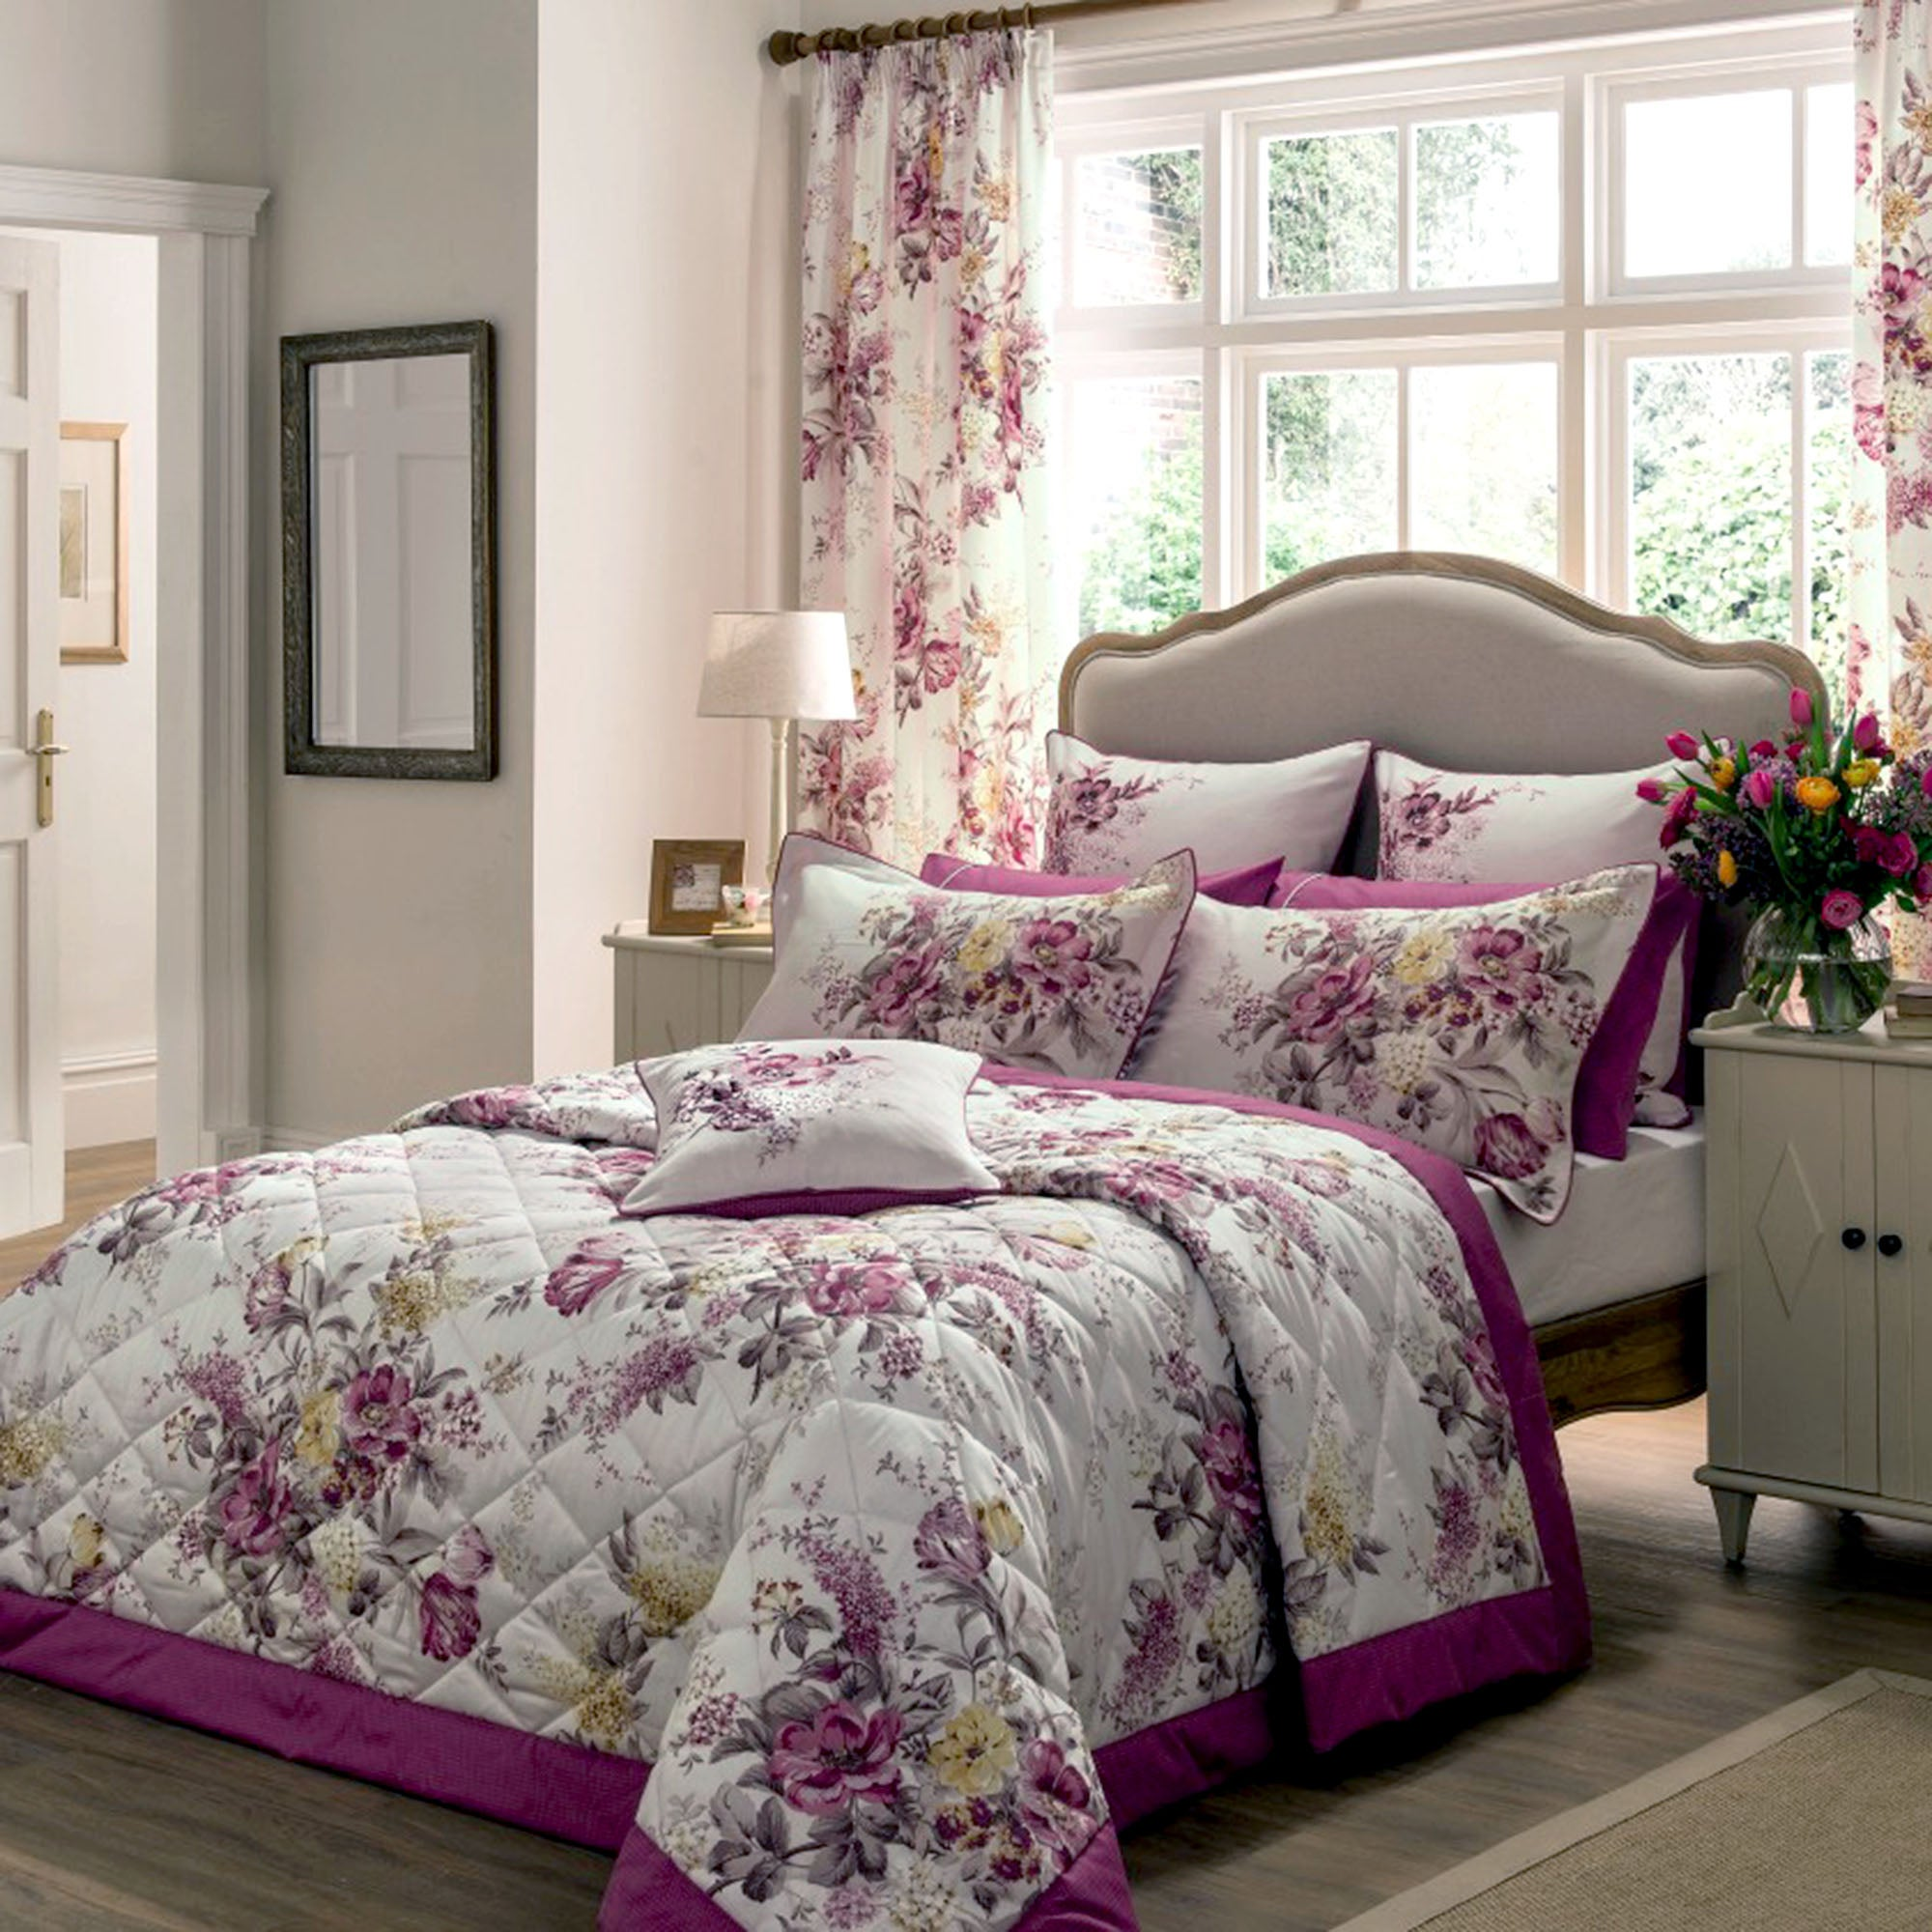 dorma pink camilla collection duvet cover dunelm. Black Bedroom Furniture Sets. Home Design Ideas